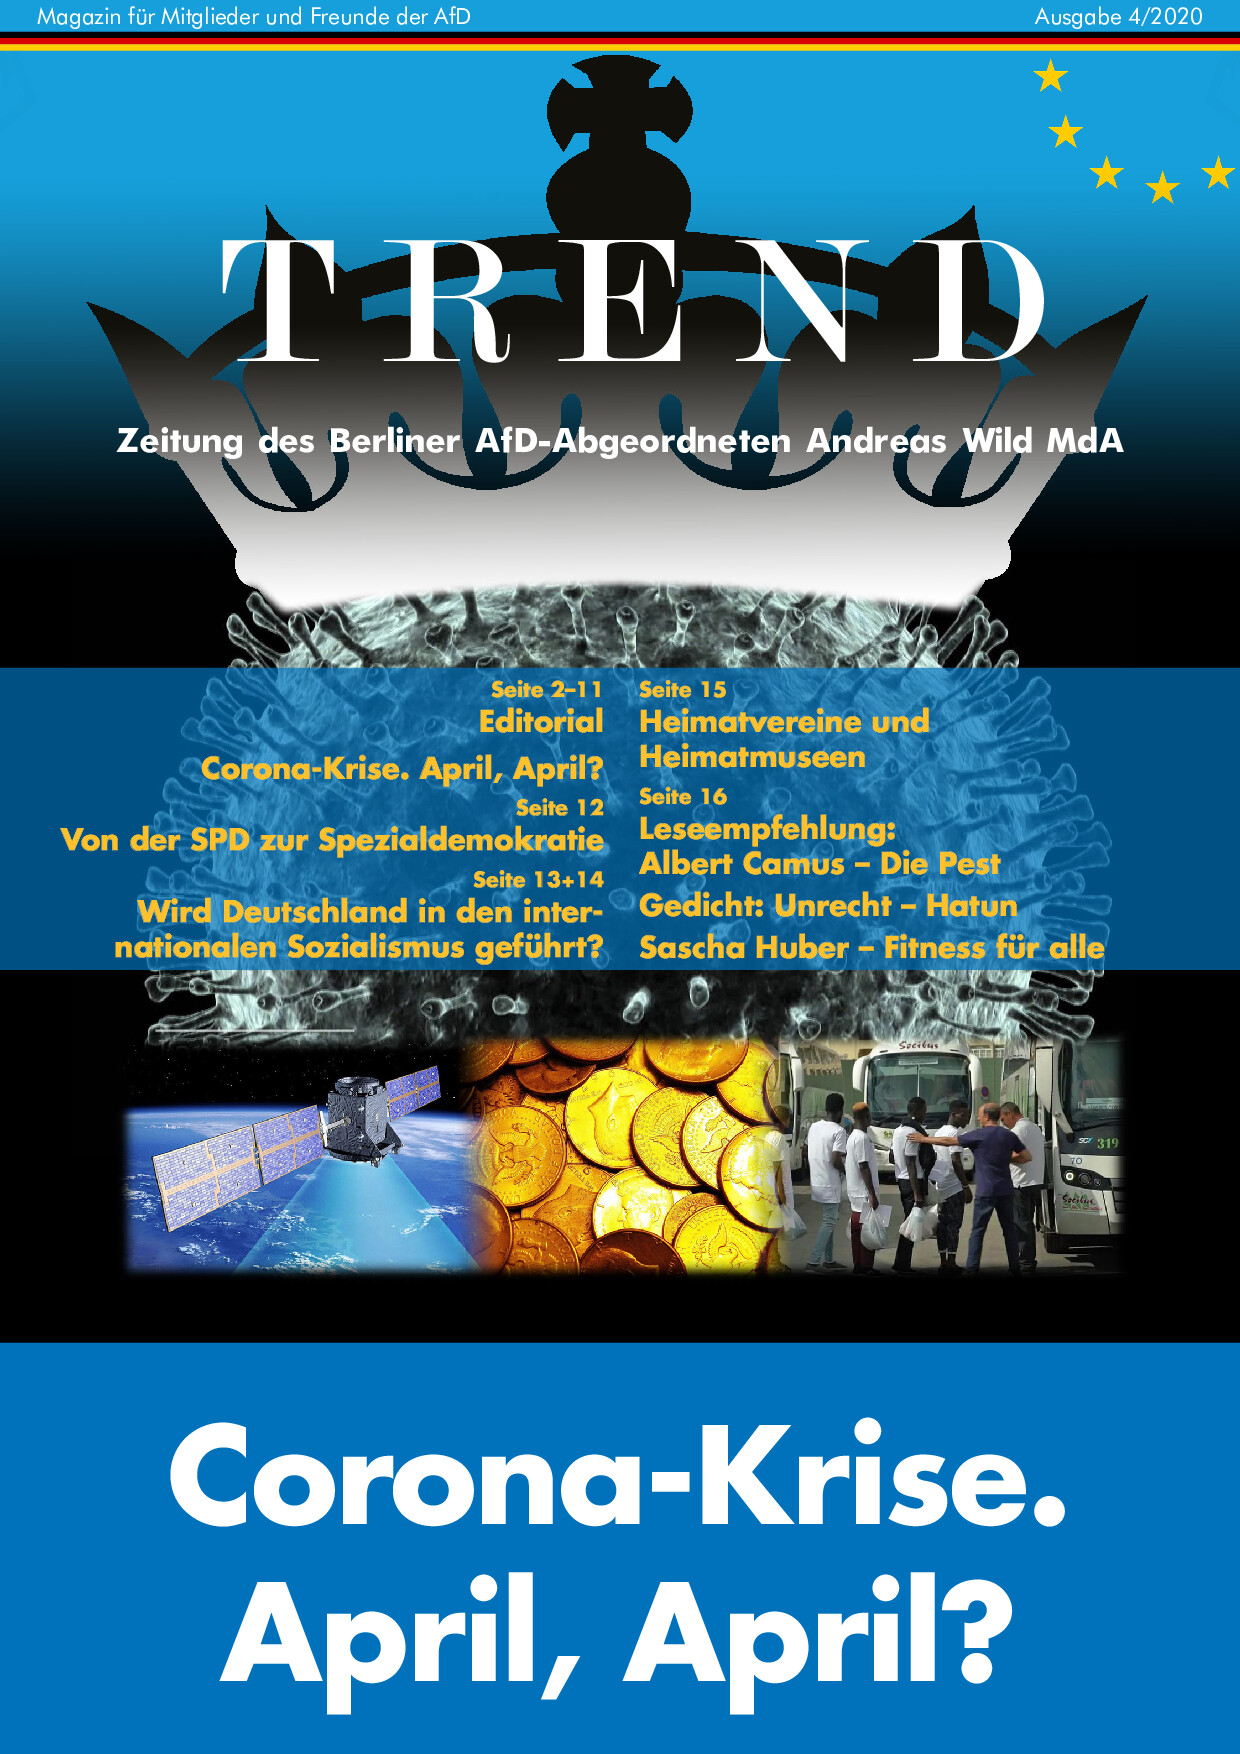 Trend-Magazin April 2020 – Corona-Krise. April, April?